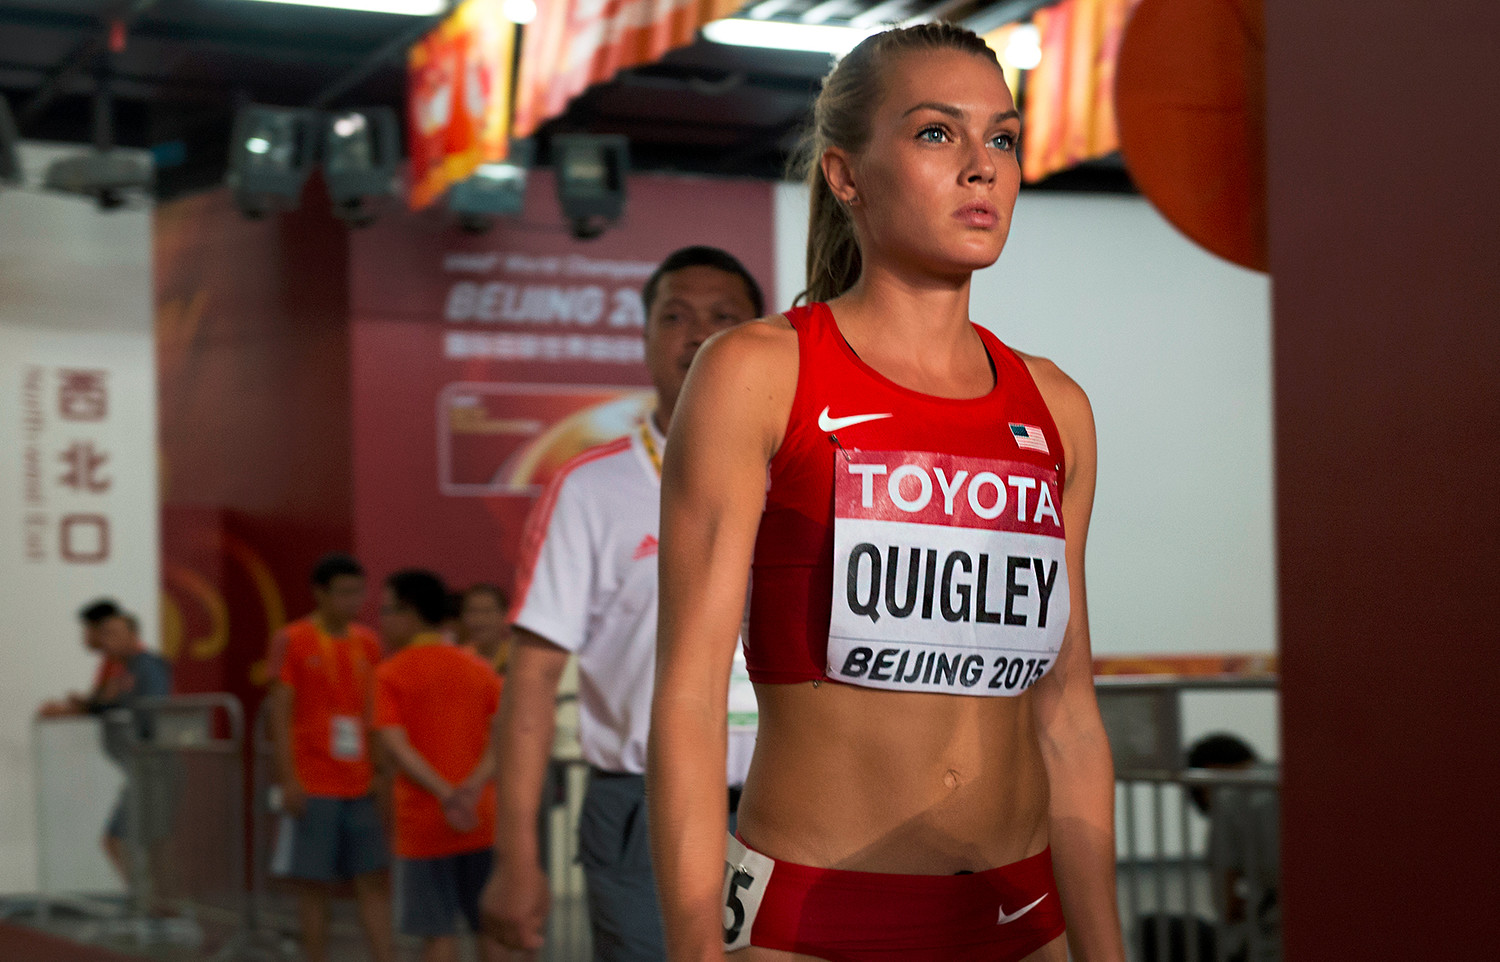 U.S. Olympian Colleen Quigley will defend her title at the NYRR Wanamaker Mile at the Millrose Games